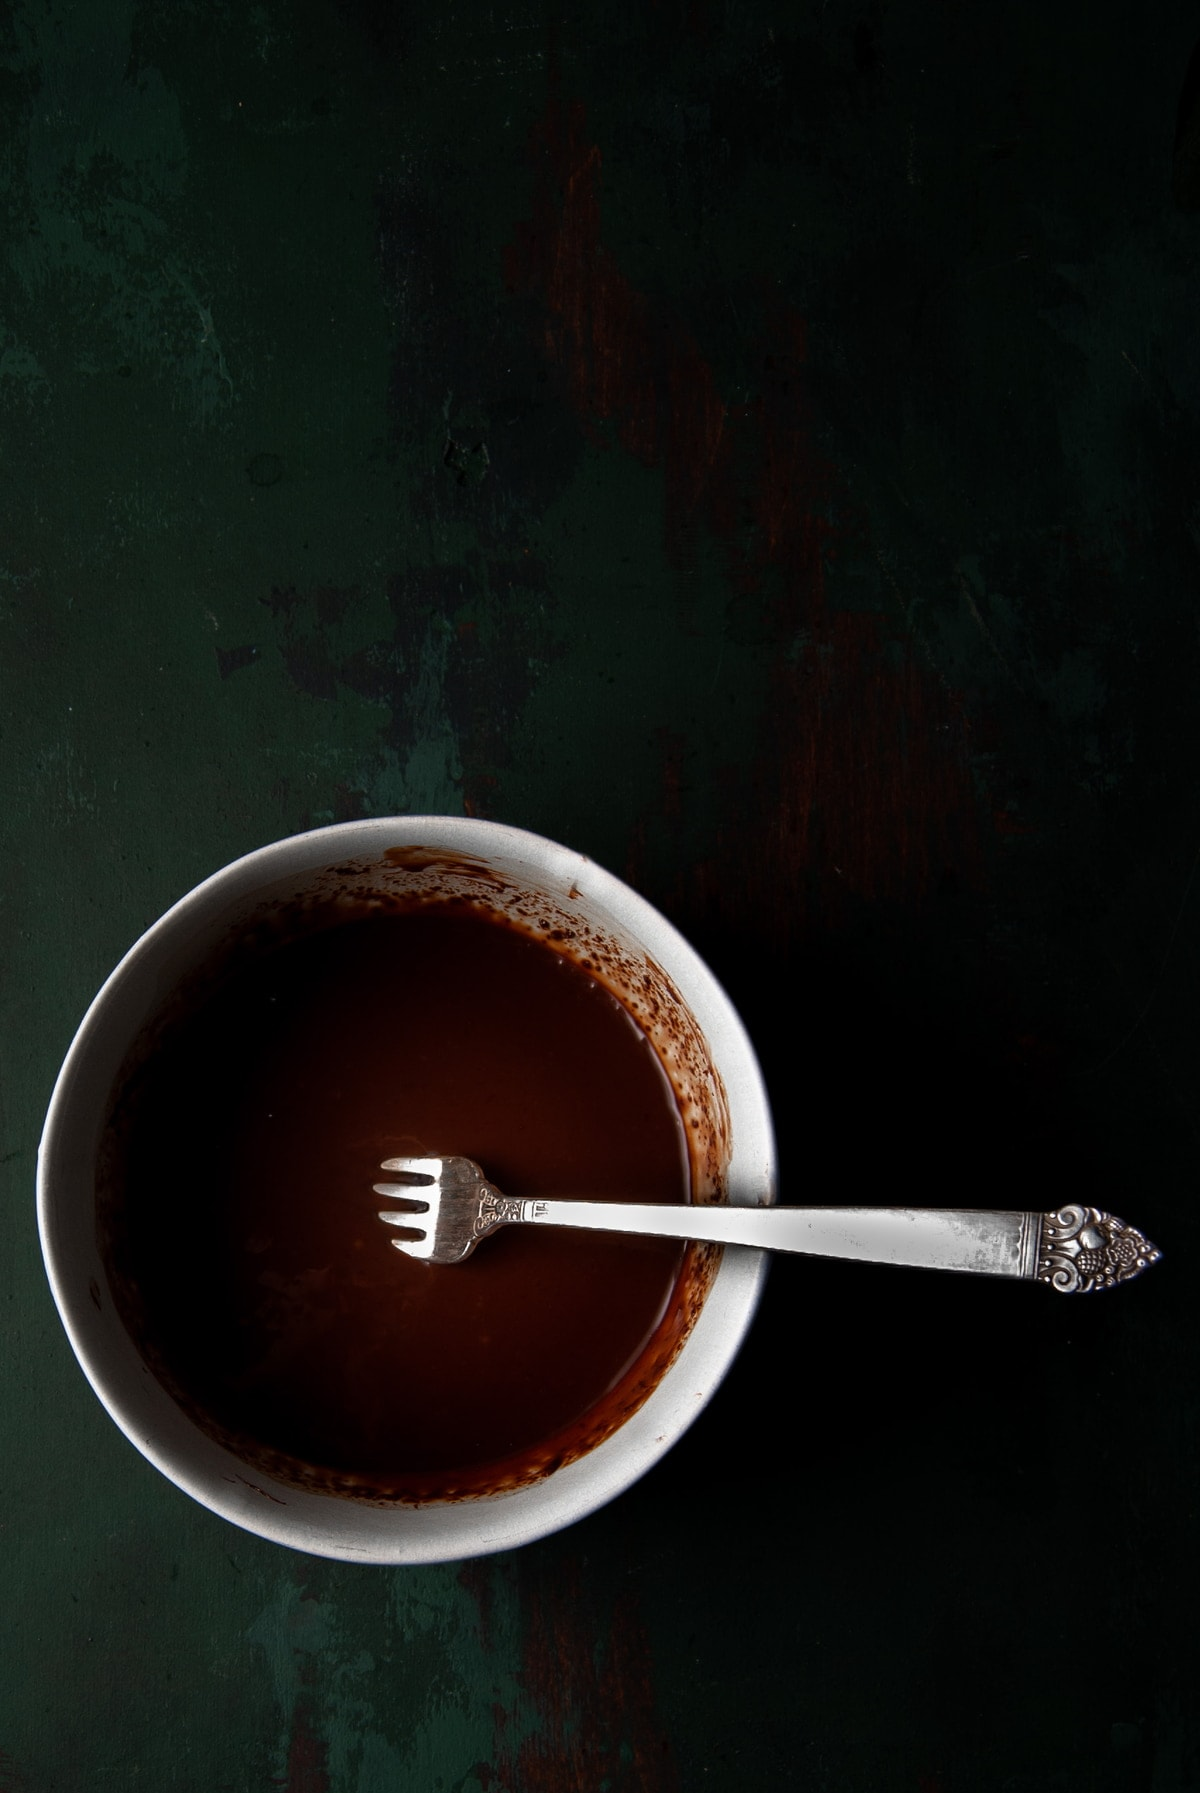 melted chocolate with a fork in it